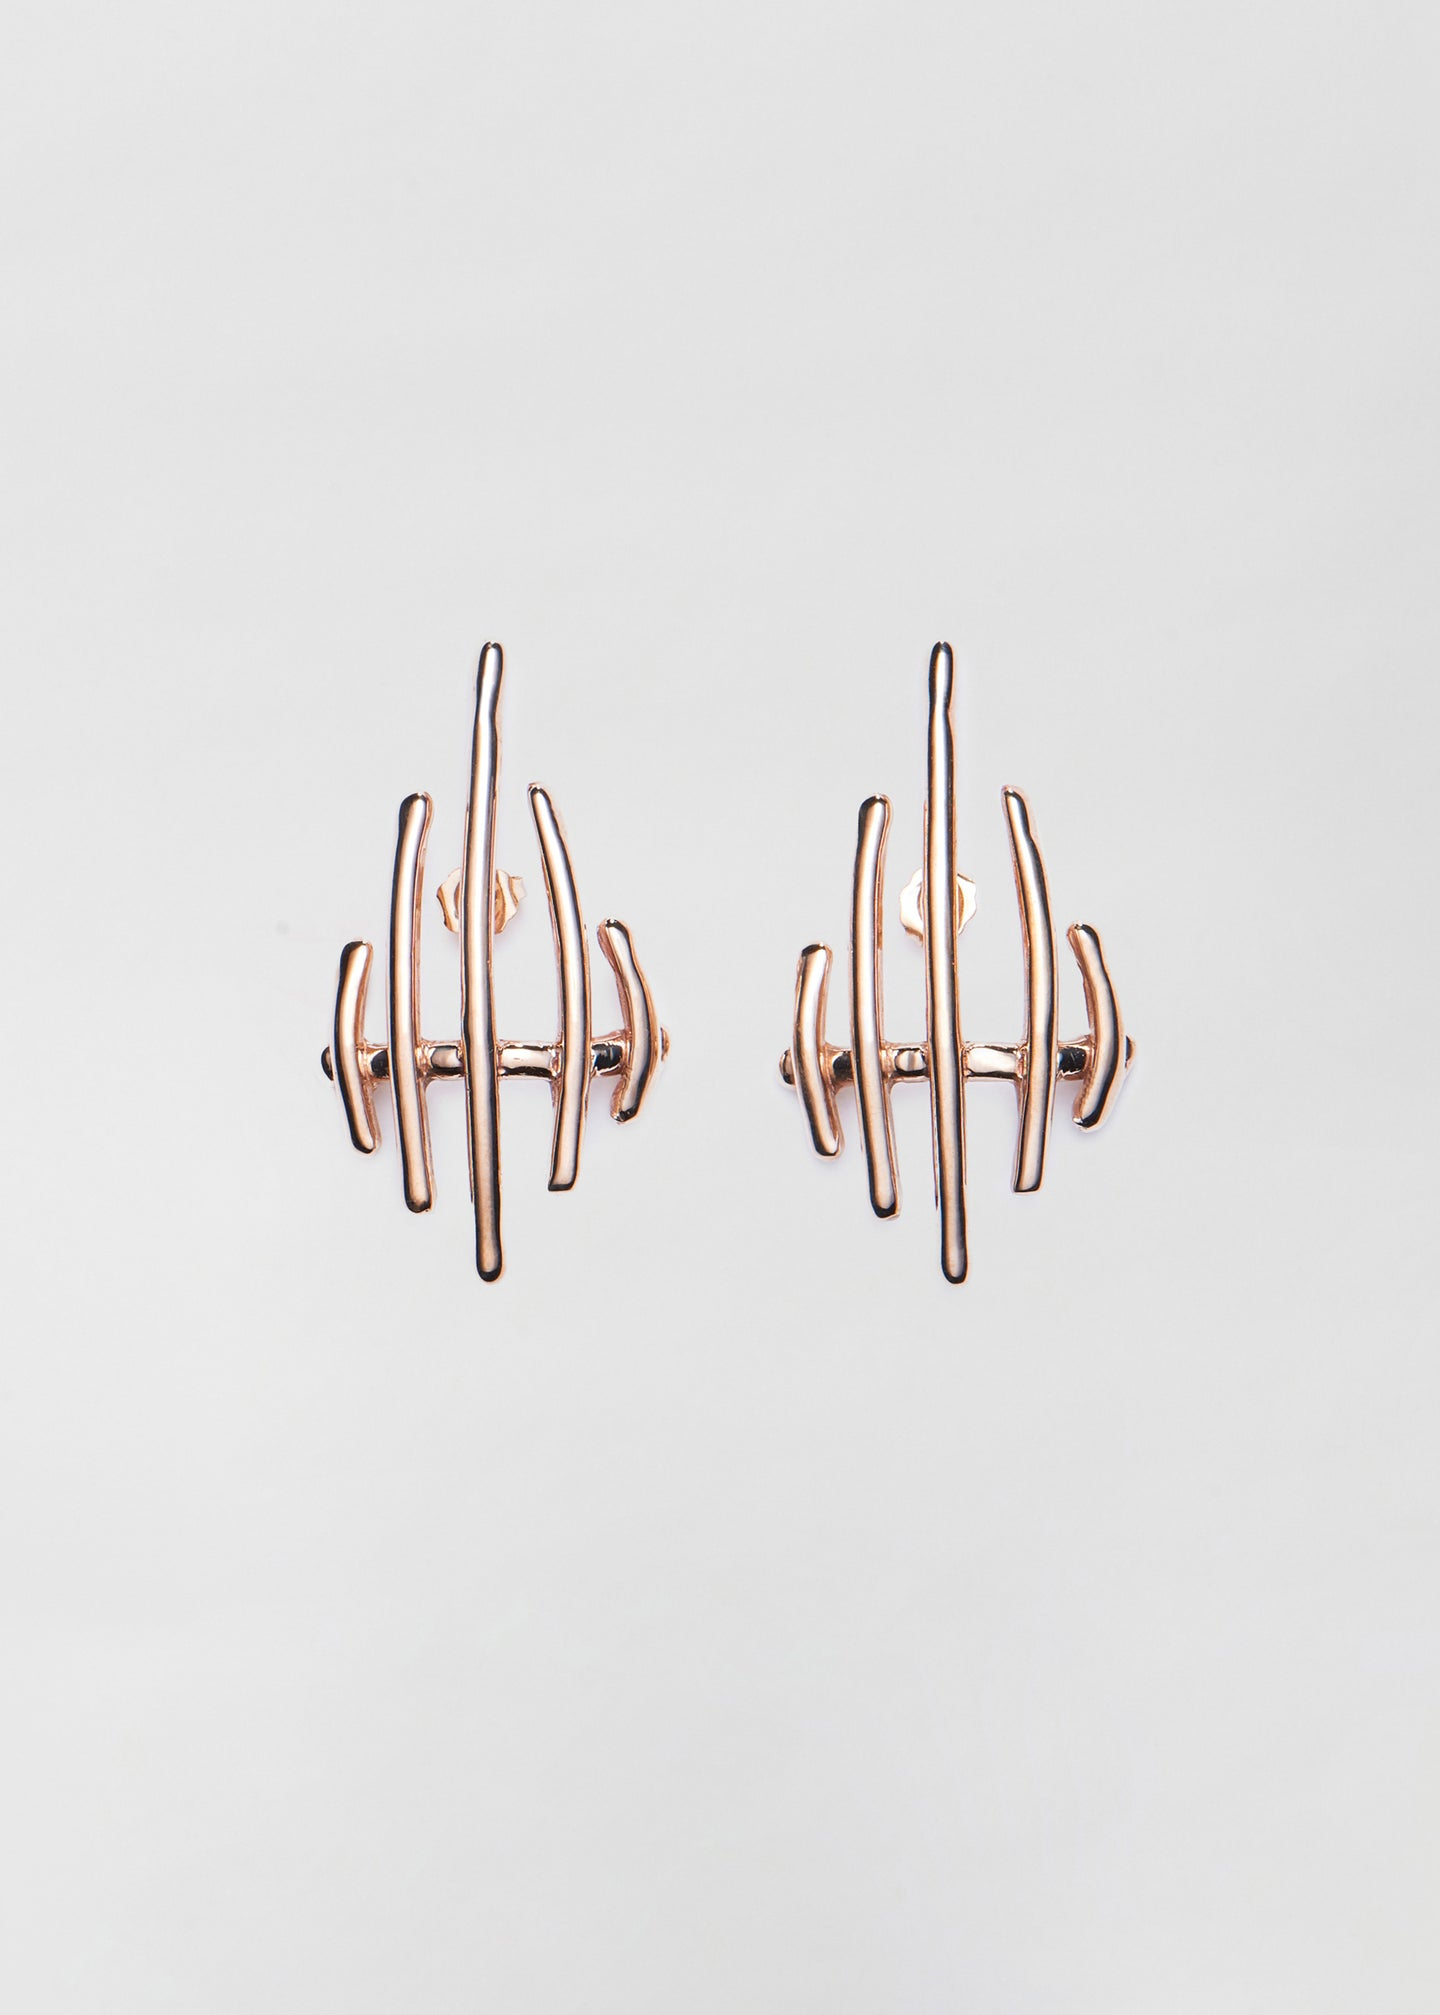 CO - Sculptural Earrings in Bronze